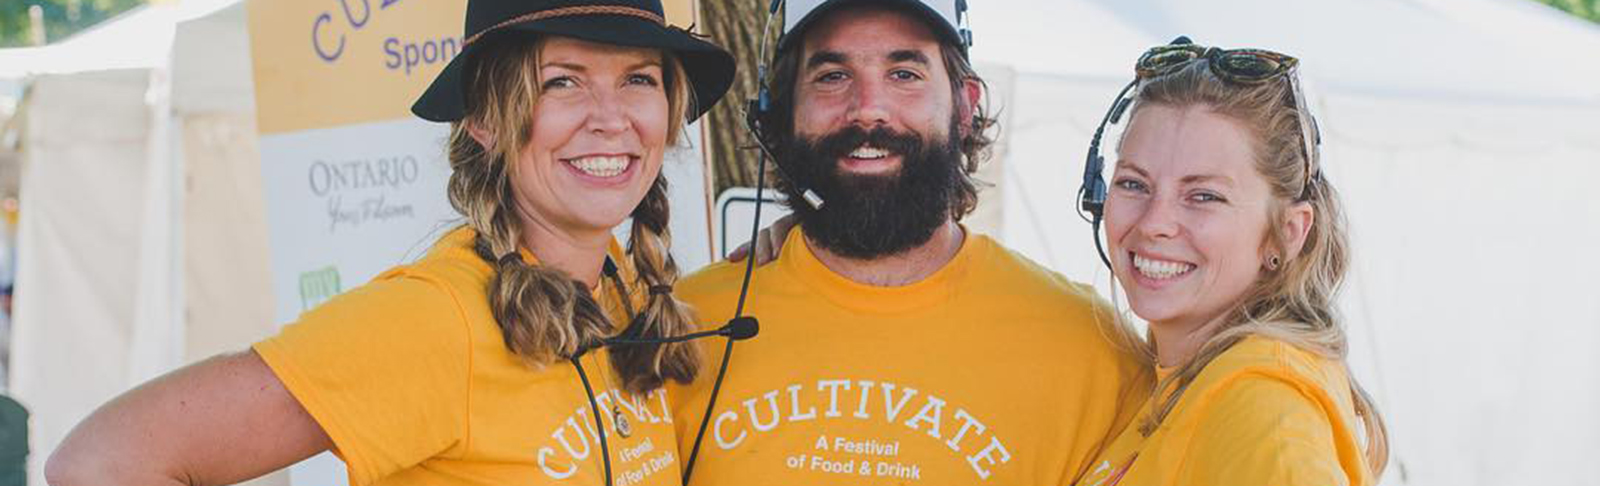 One man, two women, wearing yellow Cultivate t-shirts standing together under tree at event